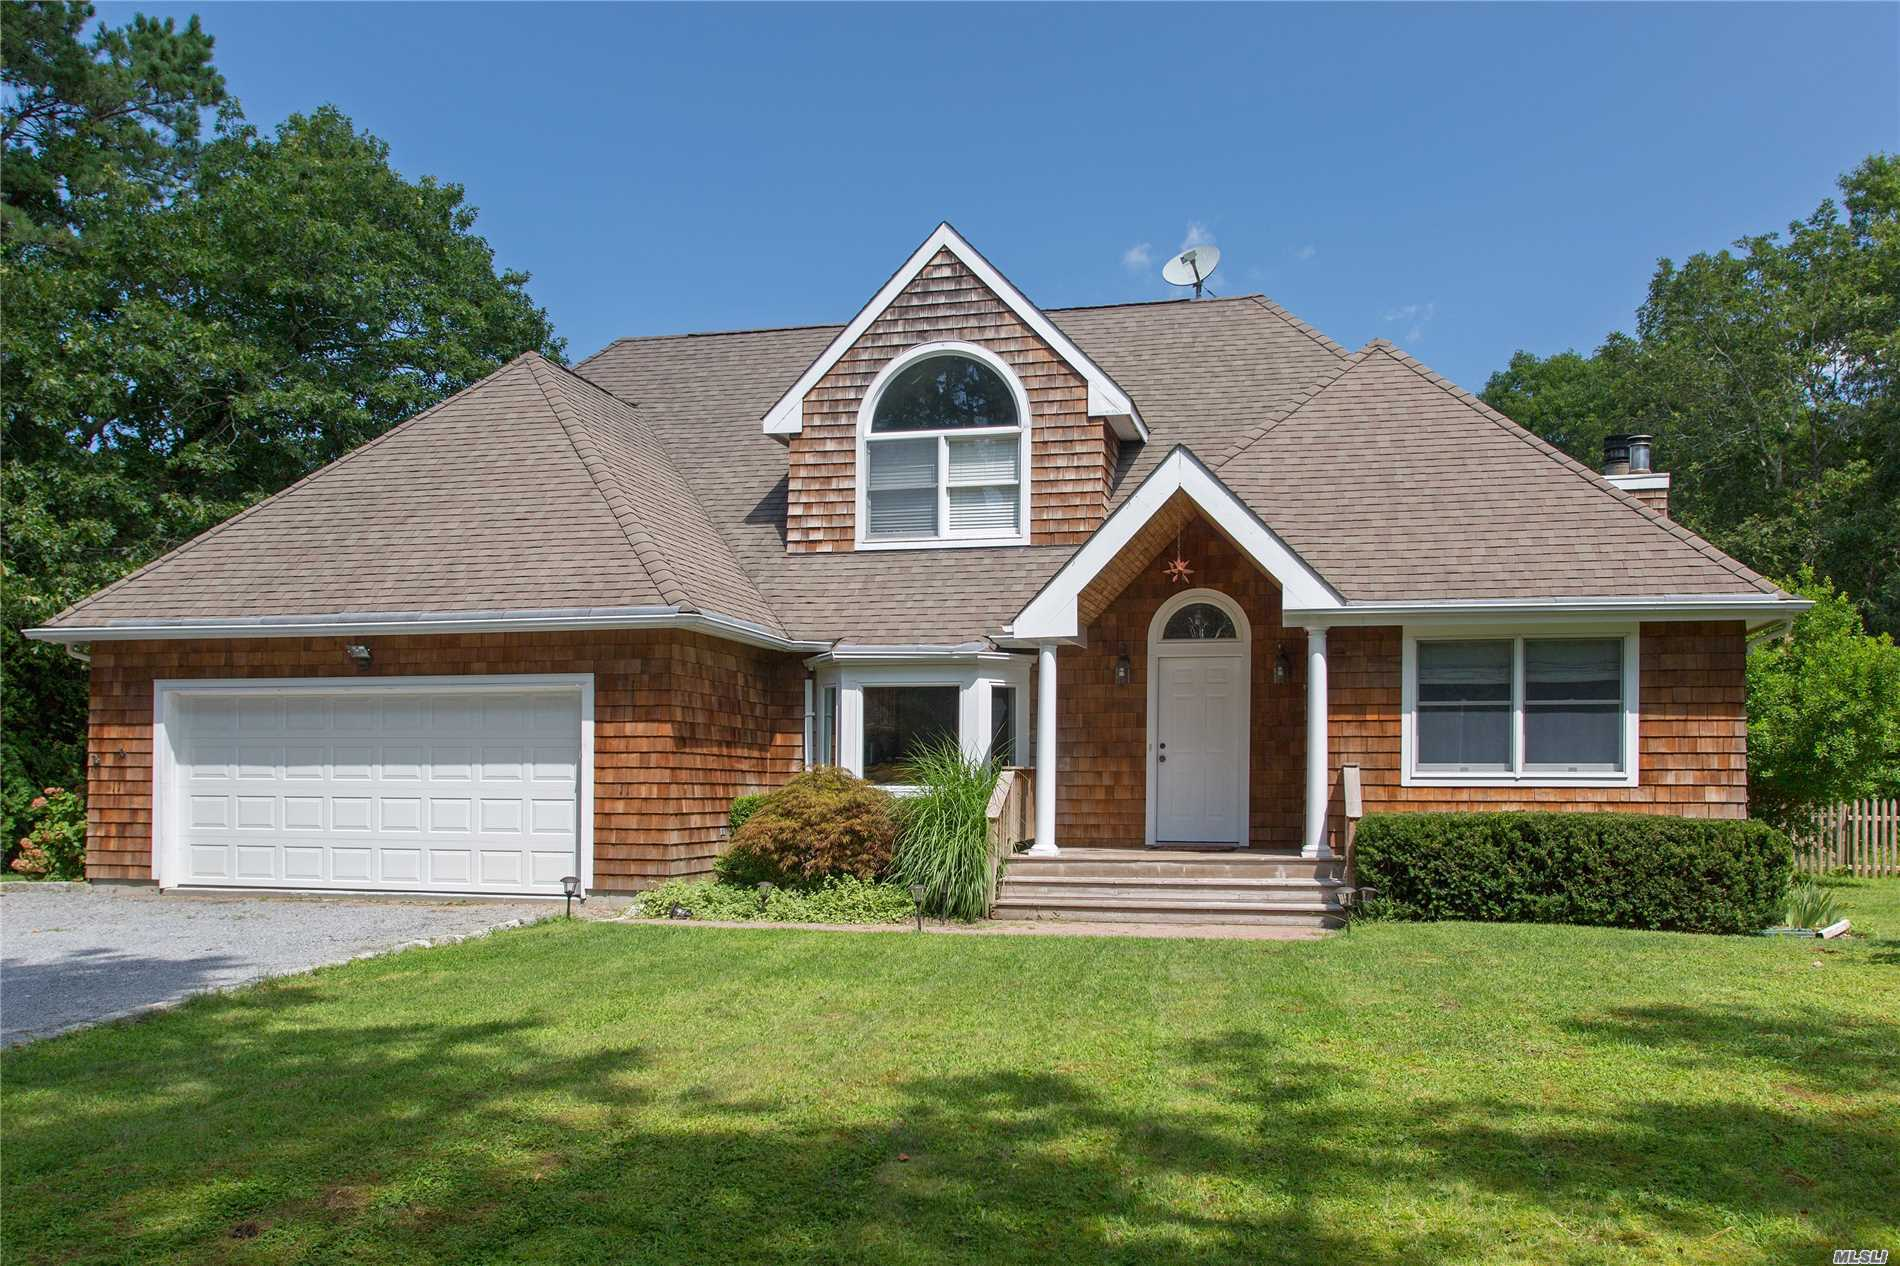 Great House, Private Cul De Sac, Open Floor Plan, Stainless Steel Appliances, 1st Floor Master, Pool, Professional Photos To Come. Please Pre. Approval Only.